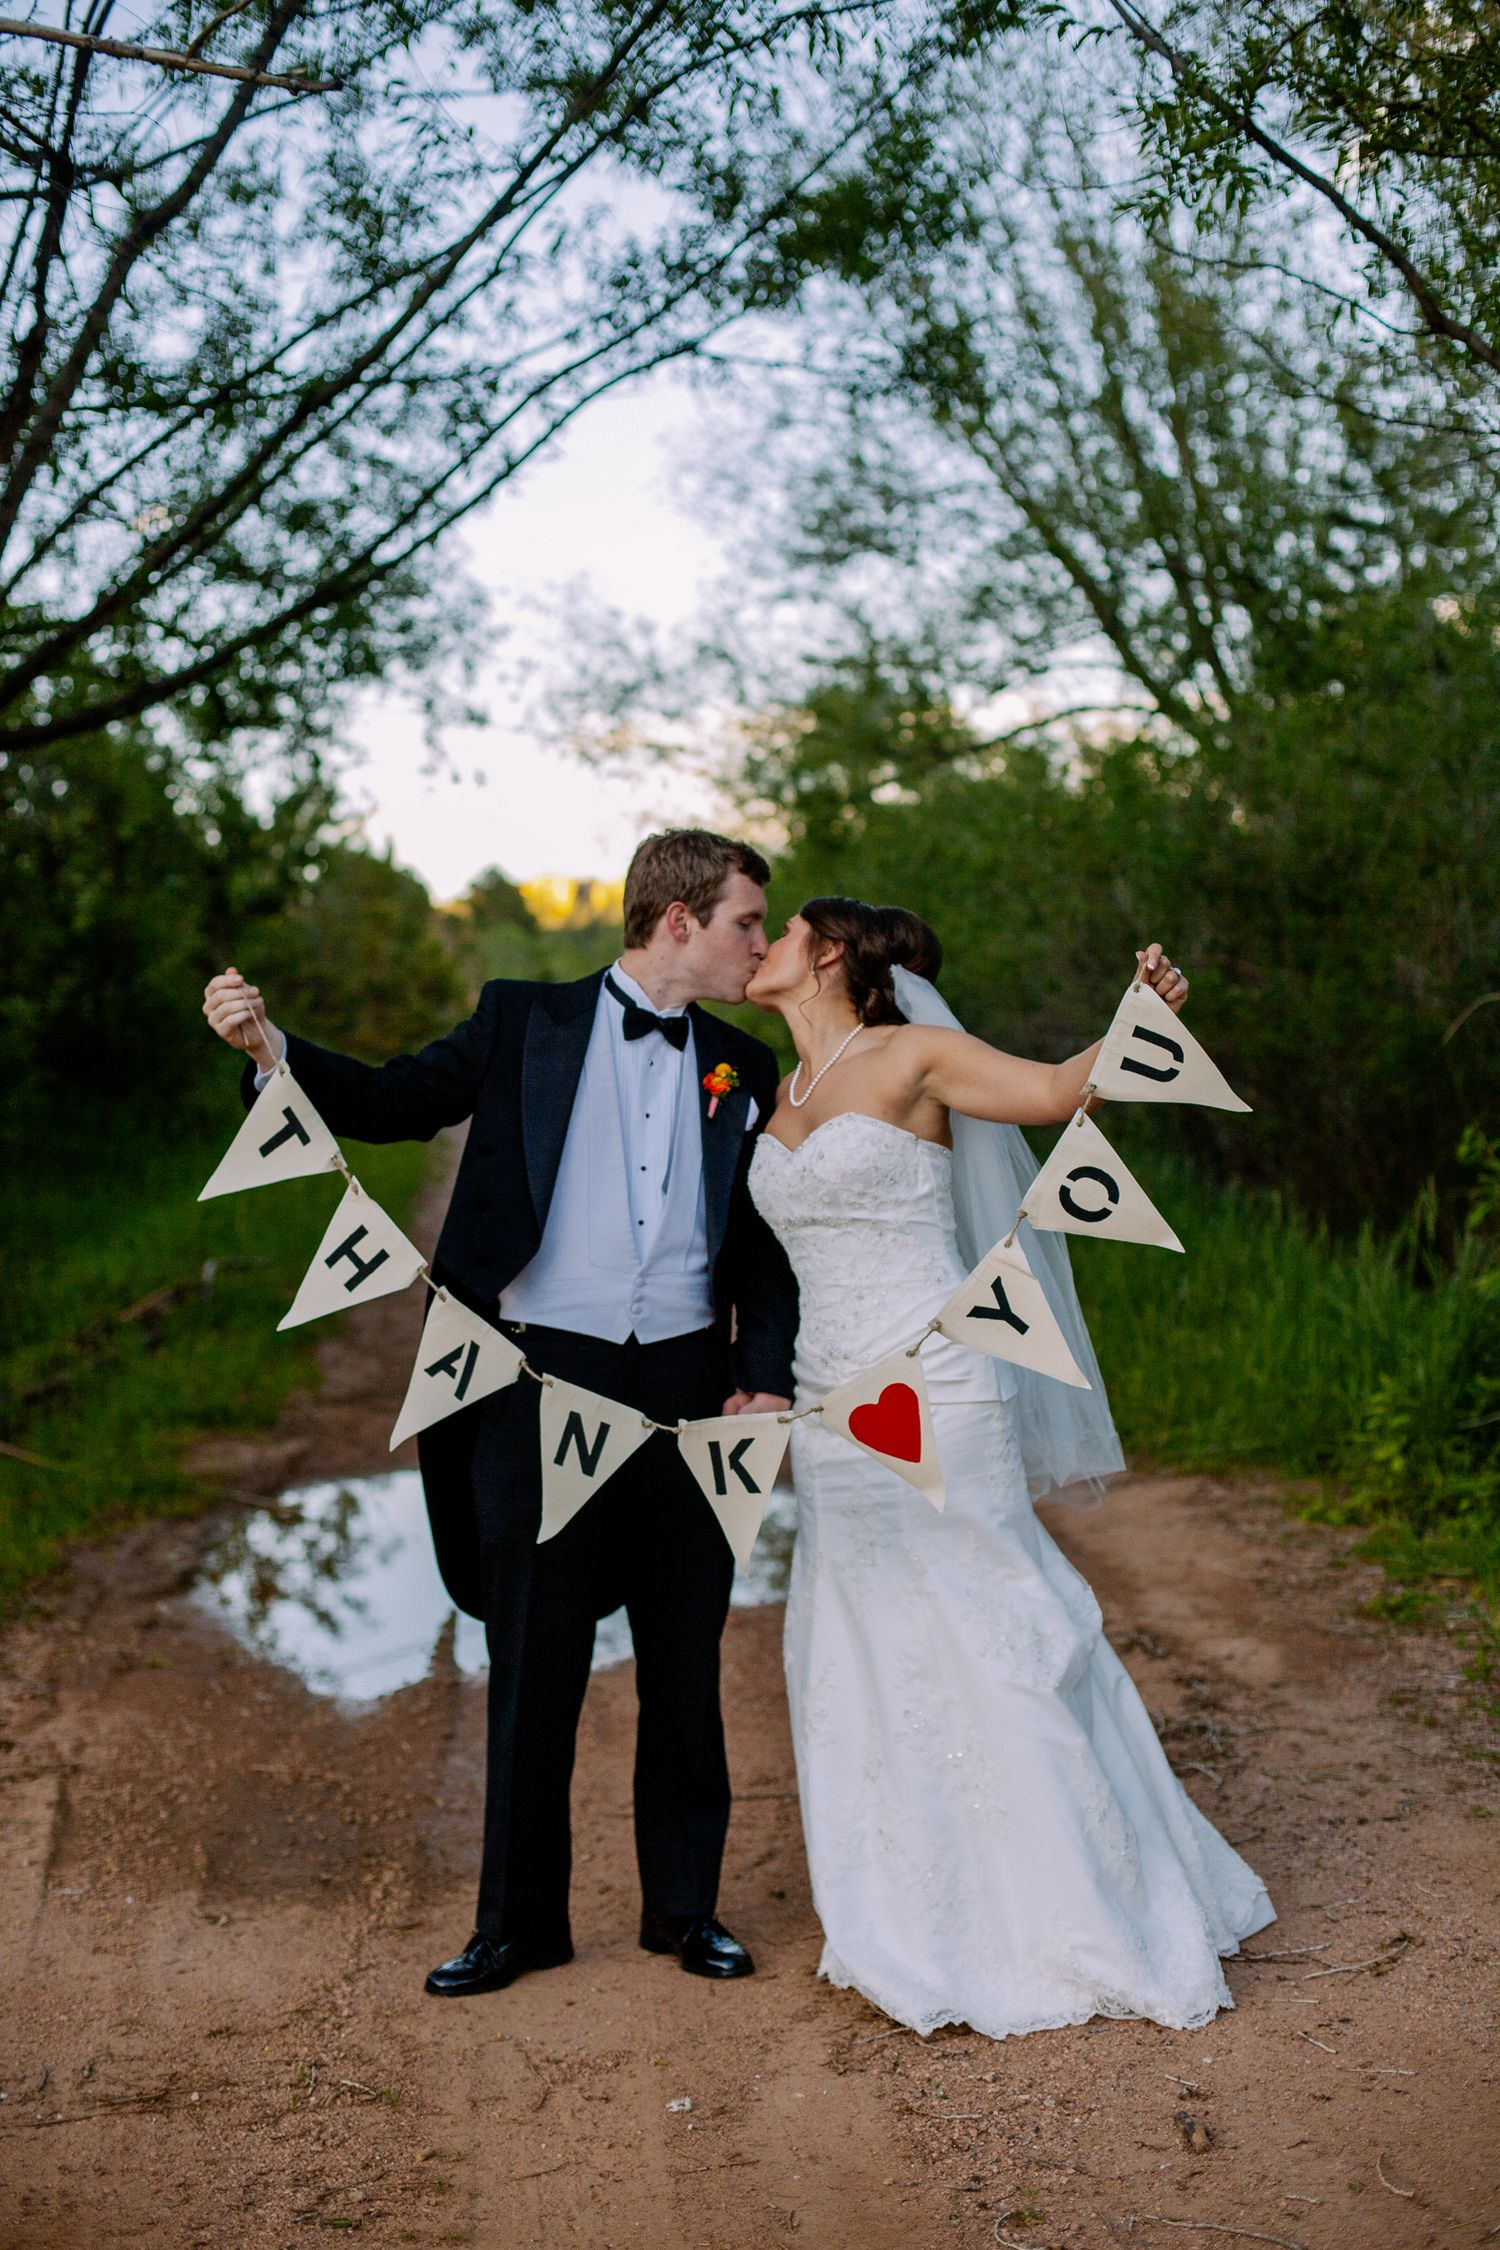 perfect photo for wedding thank you cards bring or make your own